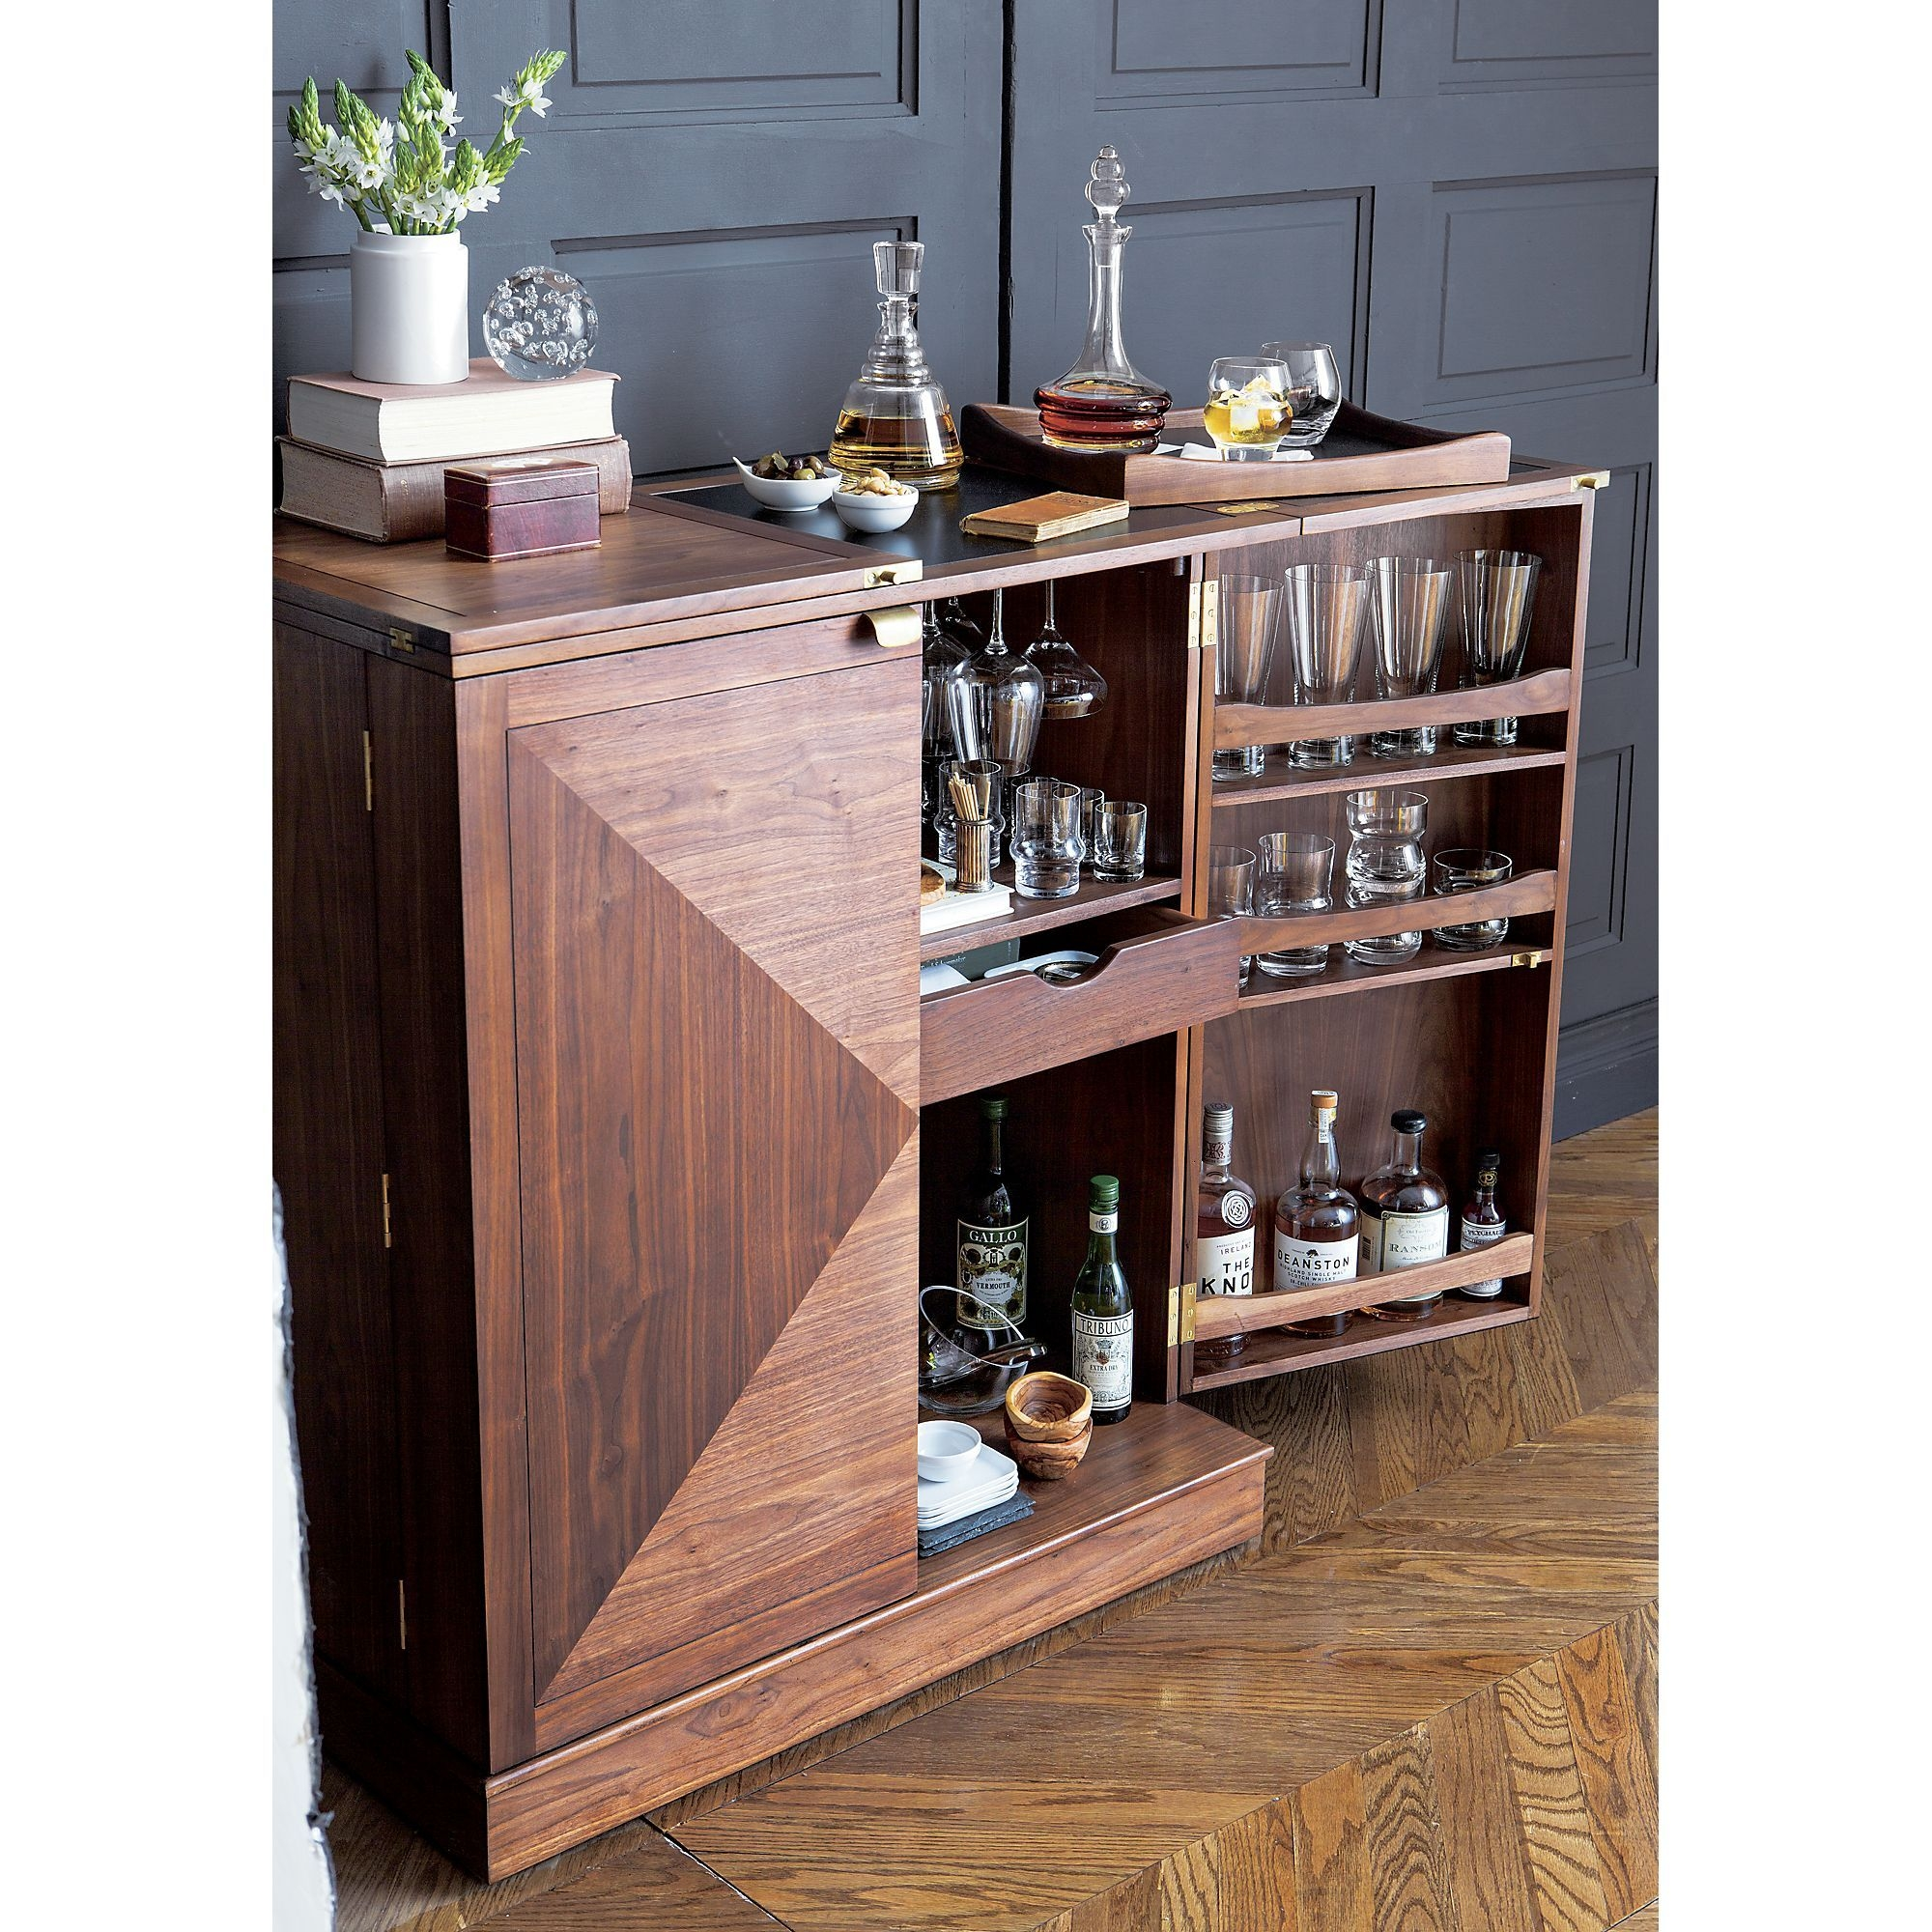 Ordinaire Mini Bars For Apartments